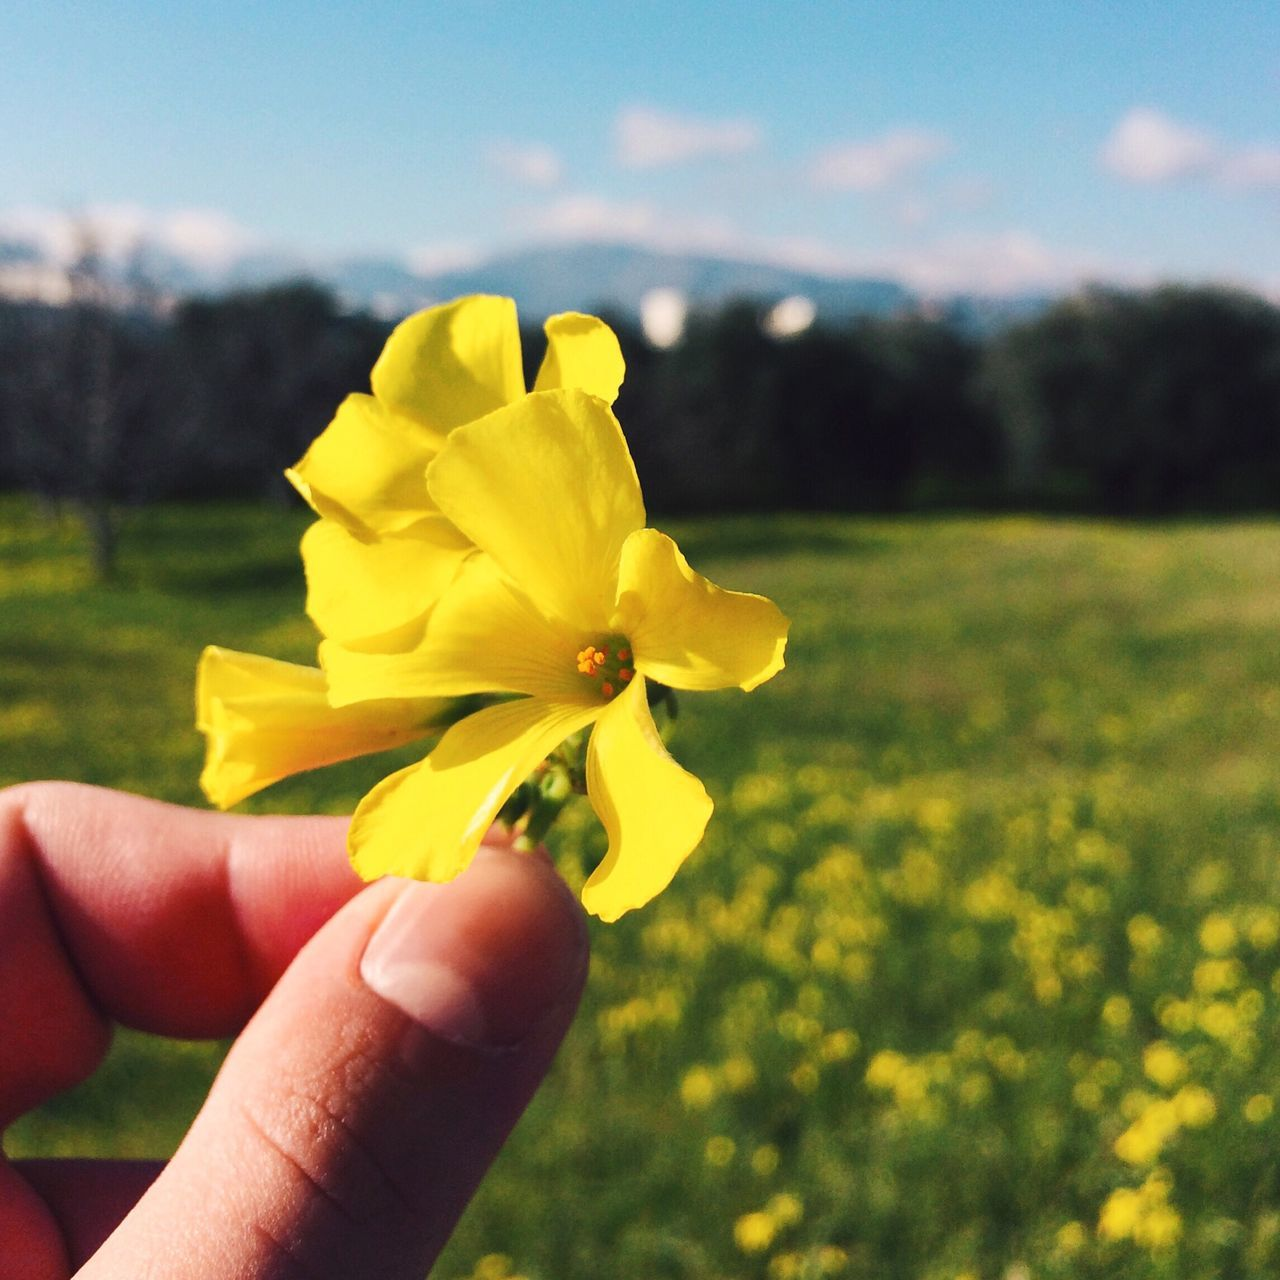 Flower Human Hand Yellow Human Body Part Nature Beauty In Nature Fragility Petal Focus On Foreground Real People Field Freshness Holding Outdoors Flower Head Close-up Day Springtime Plant